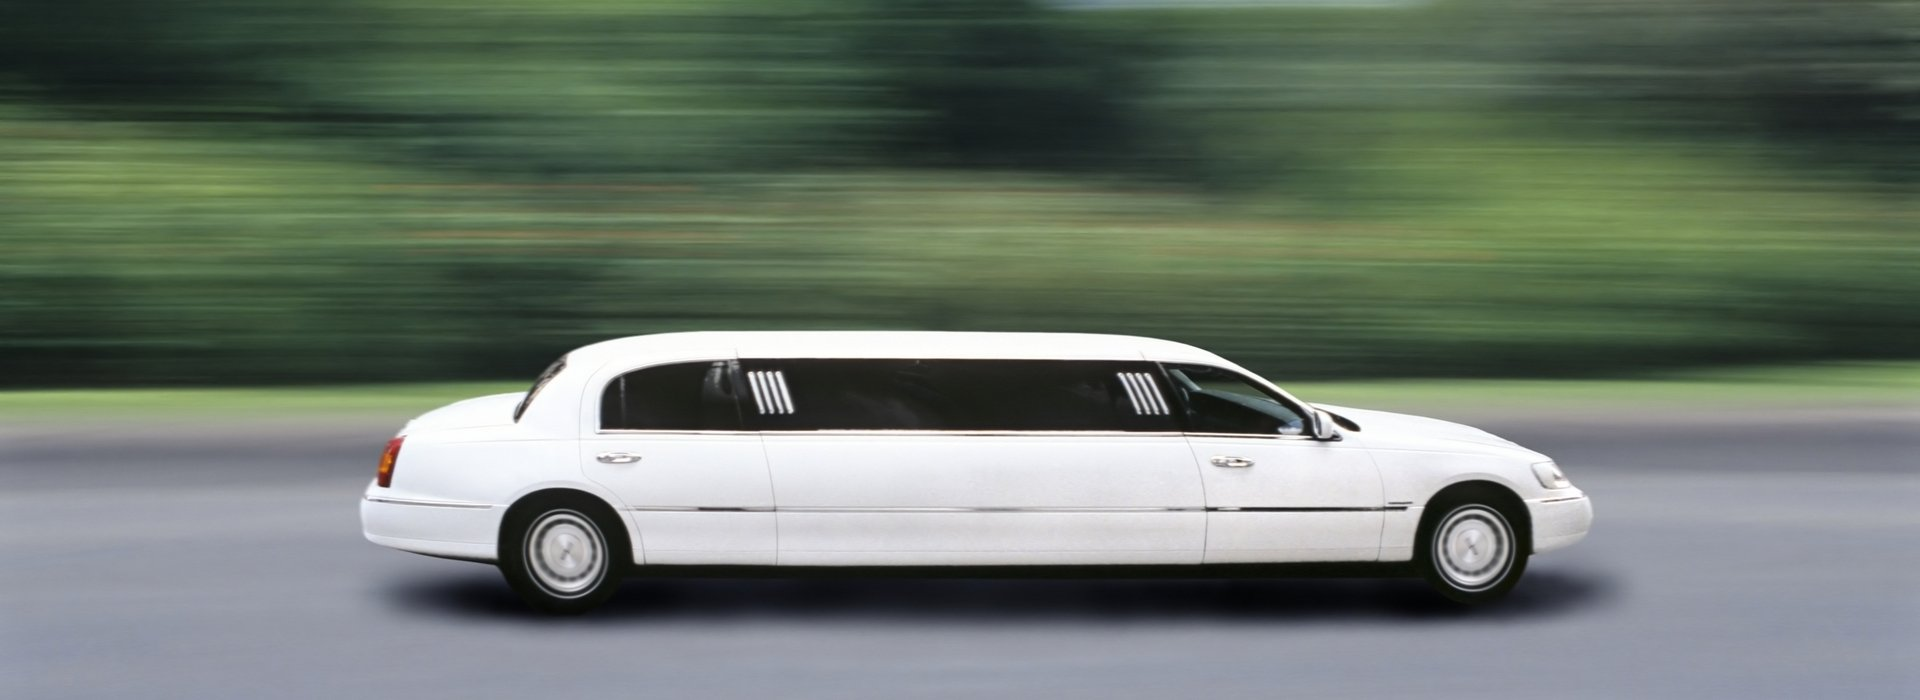 Limousine rental for weddings, dates